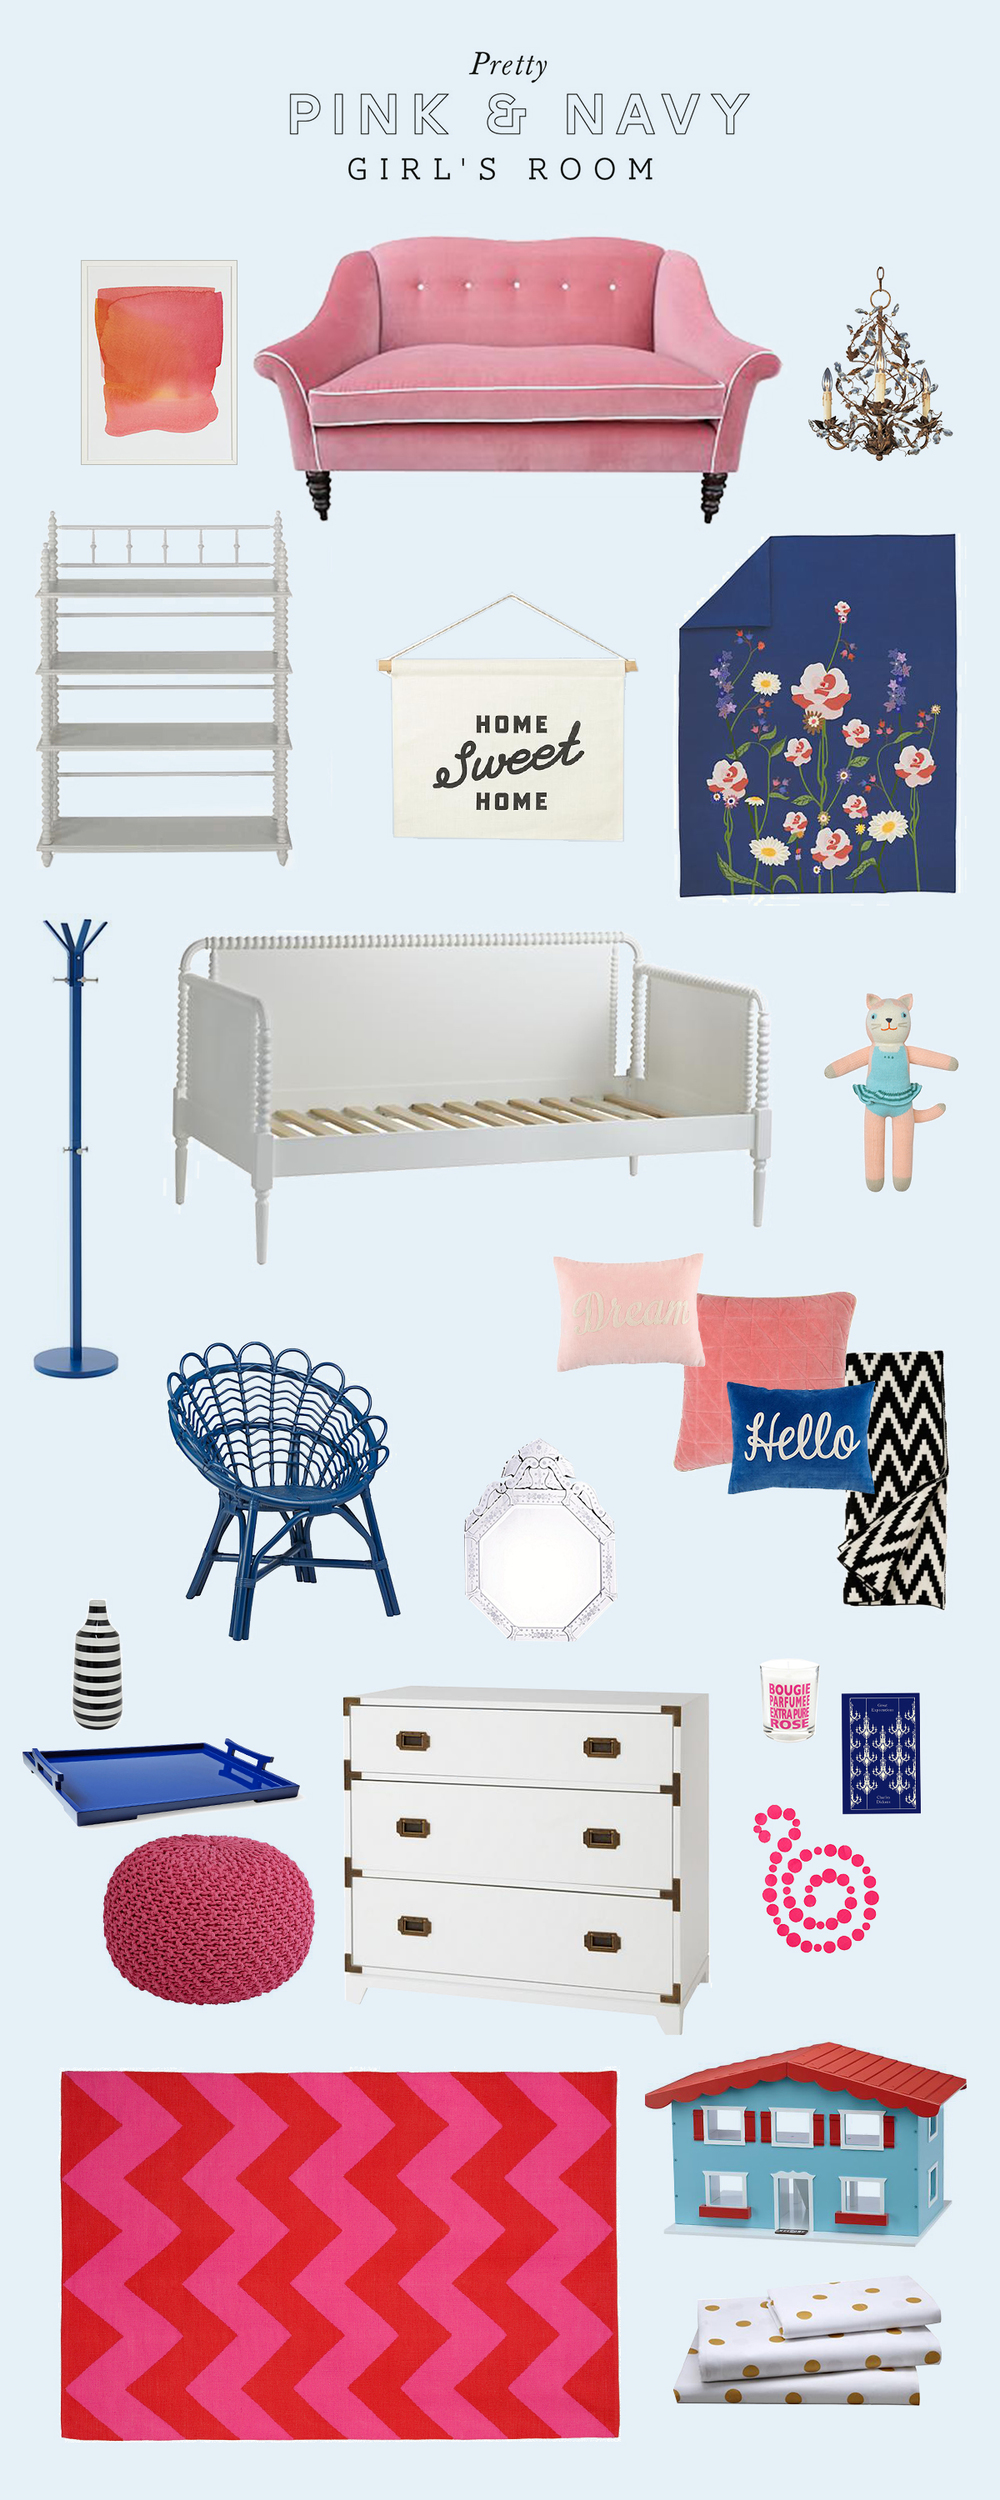 Pink & Navy Sources: Home Sweet Home Banner|Bouquet Bedding|Bookcase|Daybed|Rattan Chair|Dream Pillow|Hello Pillow|Quilted Pillow|Knit Pouf|Campaign Dresser|Dollhouse|Gold Dot Sheet|Pink Garland|Navy Tray|Stripped Vase|Pink Candle|Elegant Chandelier|Mercer Throw Blanket|Marnie Clear Mirror|Penguin Classic Book|Pink Wall Art|Blabla Kitty|Pattern Society Rug|